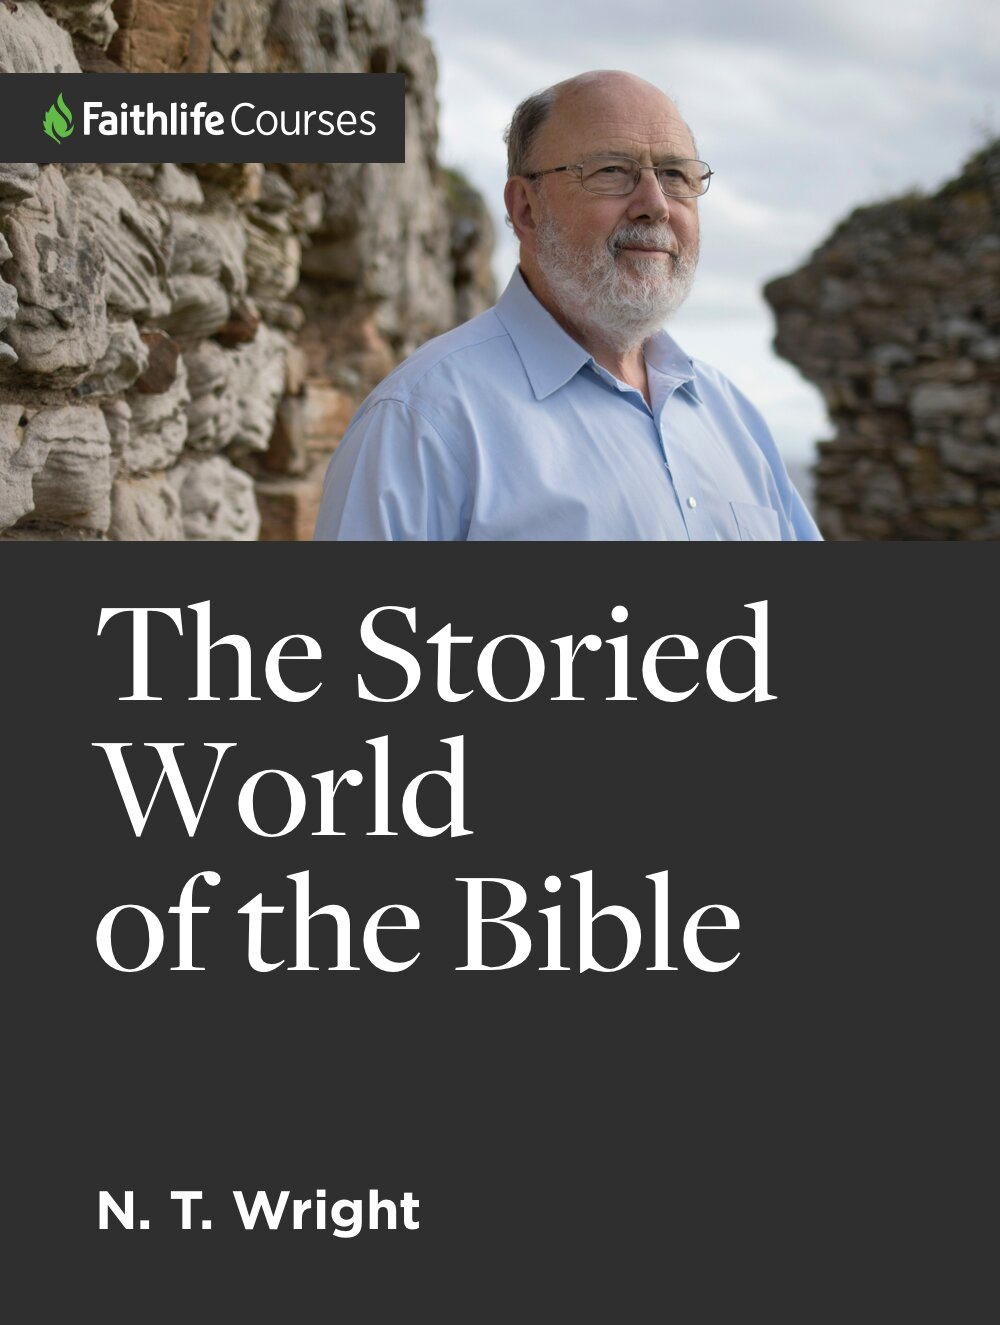 The Storied World of the Bible